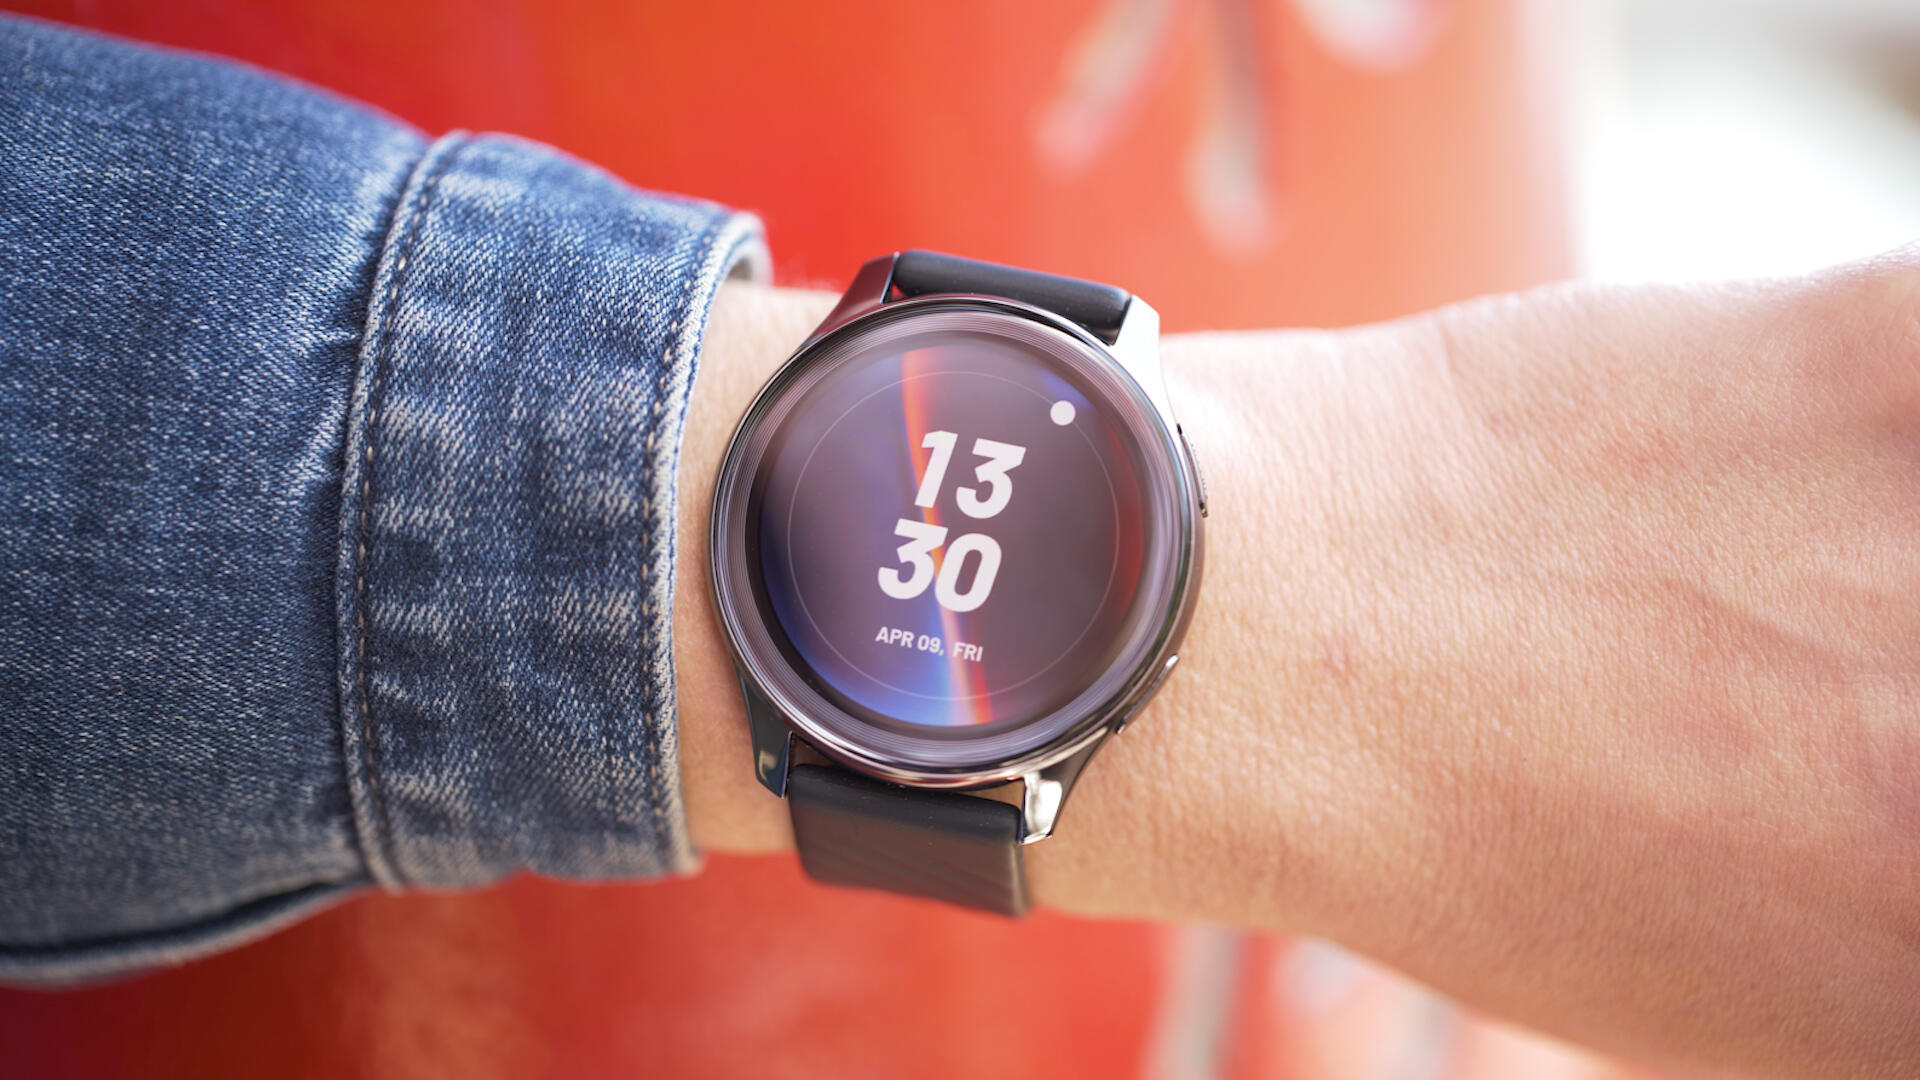 Video: The OnePlus Watch needs some fine-tuning